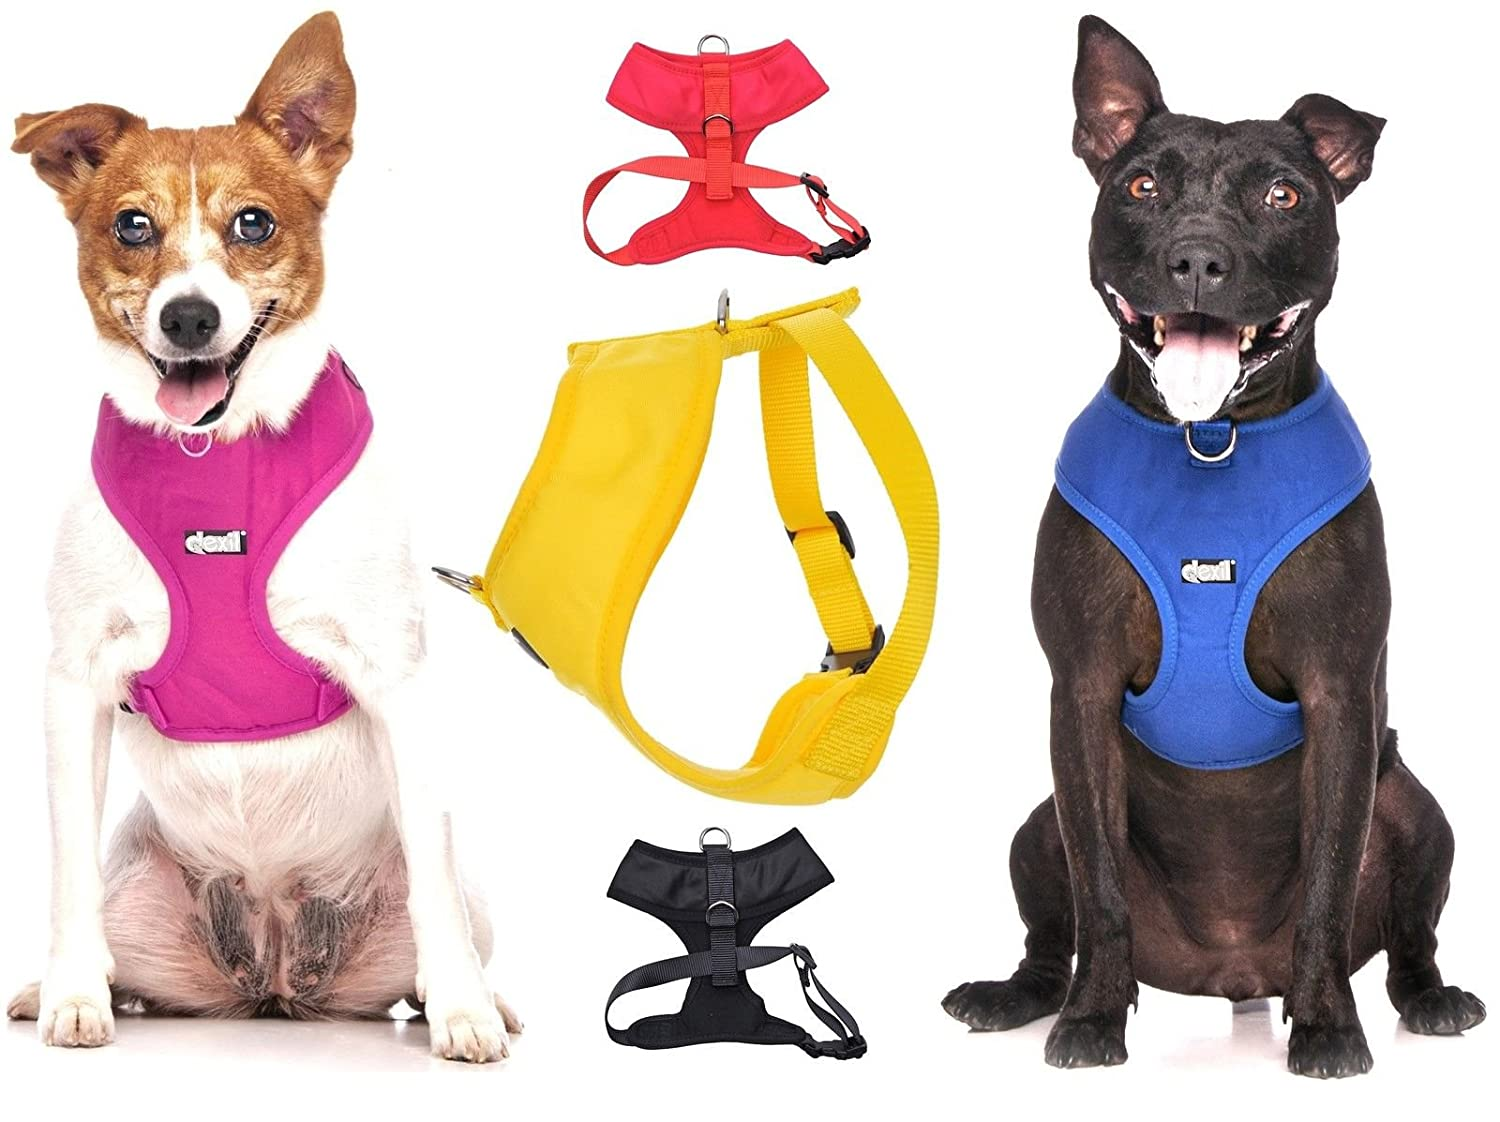 Flash Red Small 15-24inch chest Flash Red Small 15-24inch chest Dexil Elite Range Luxury Padded Waterproof Adjustable Back and Front Ring Non-Pull Small Pet Dog Vest Harness (Flash Red, Small 15-24inch Chest)